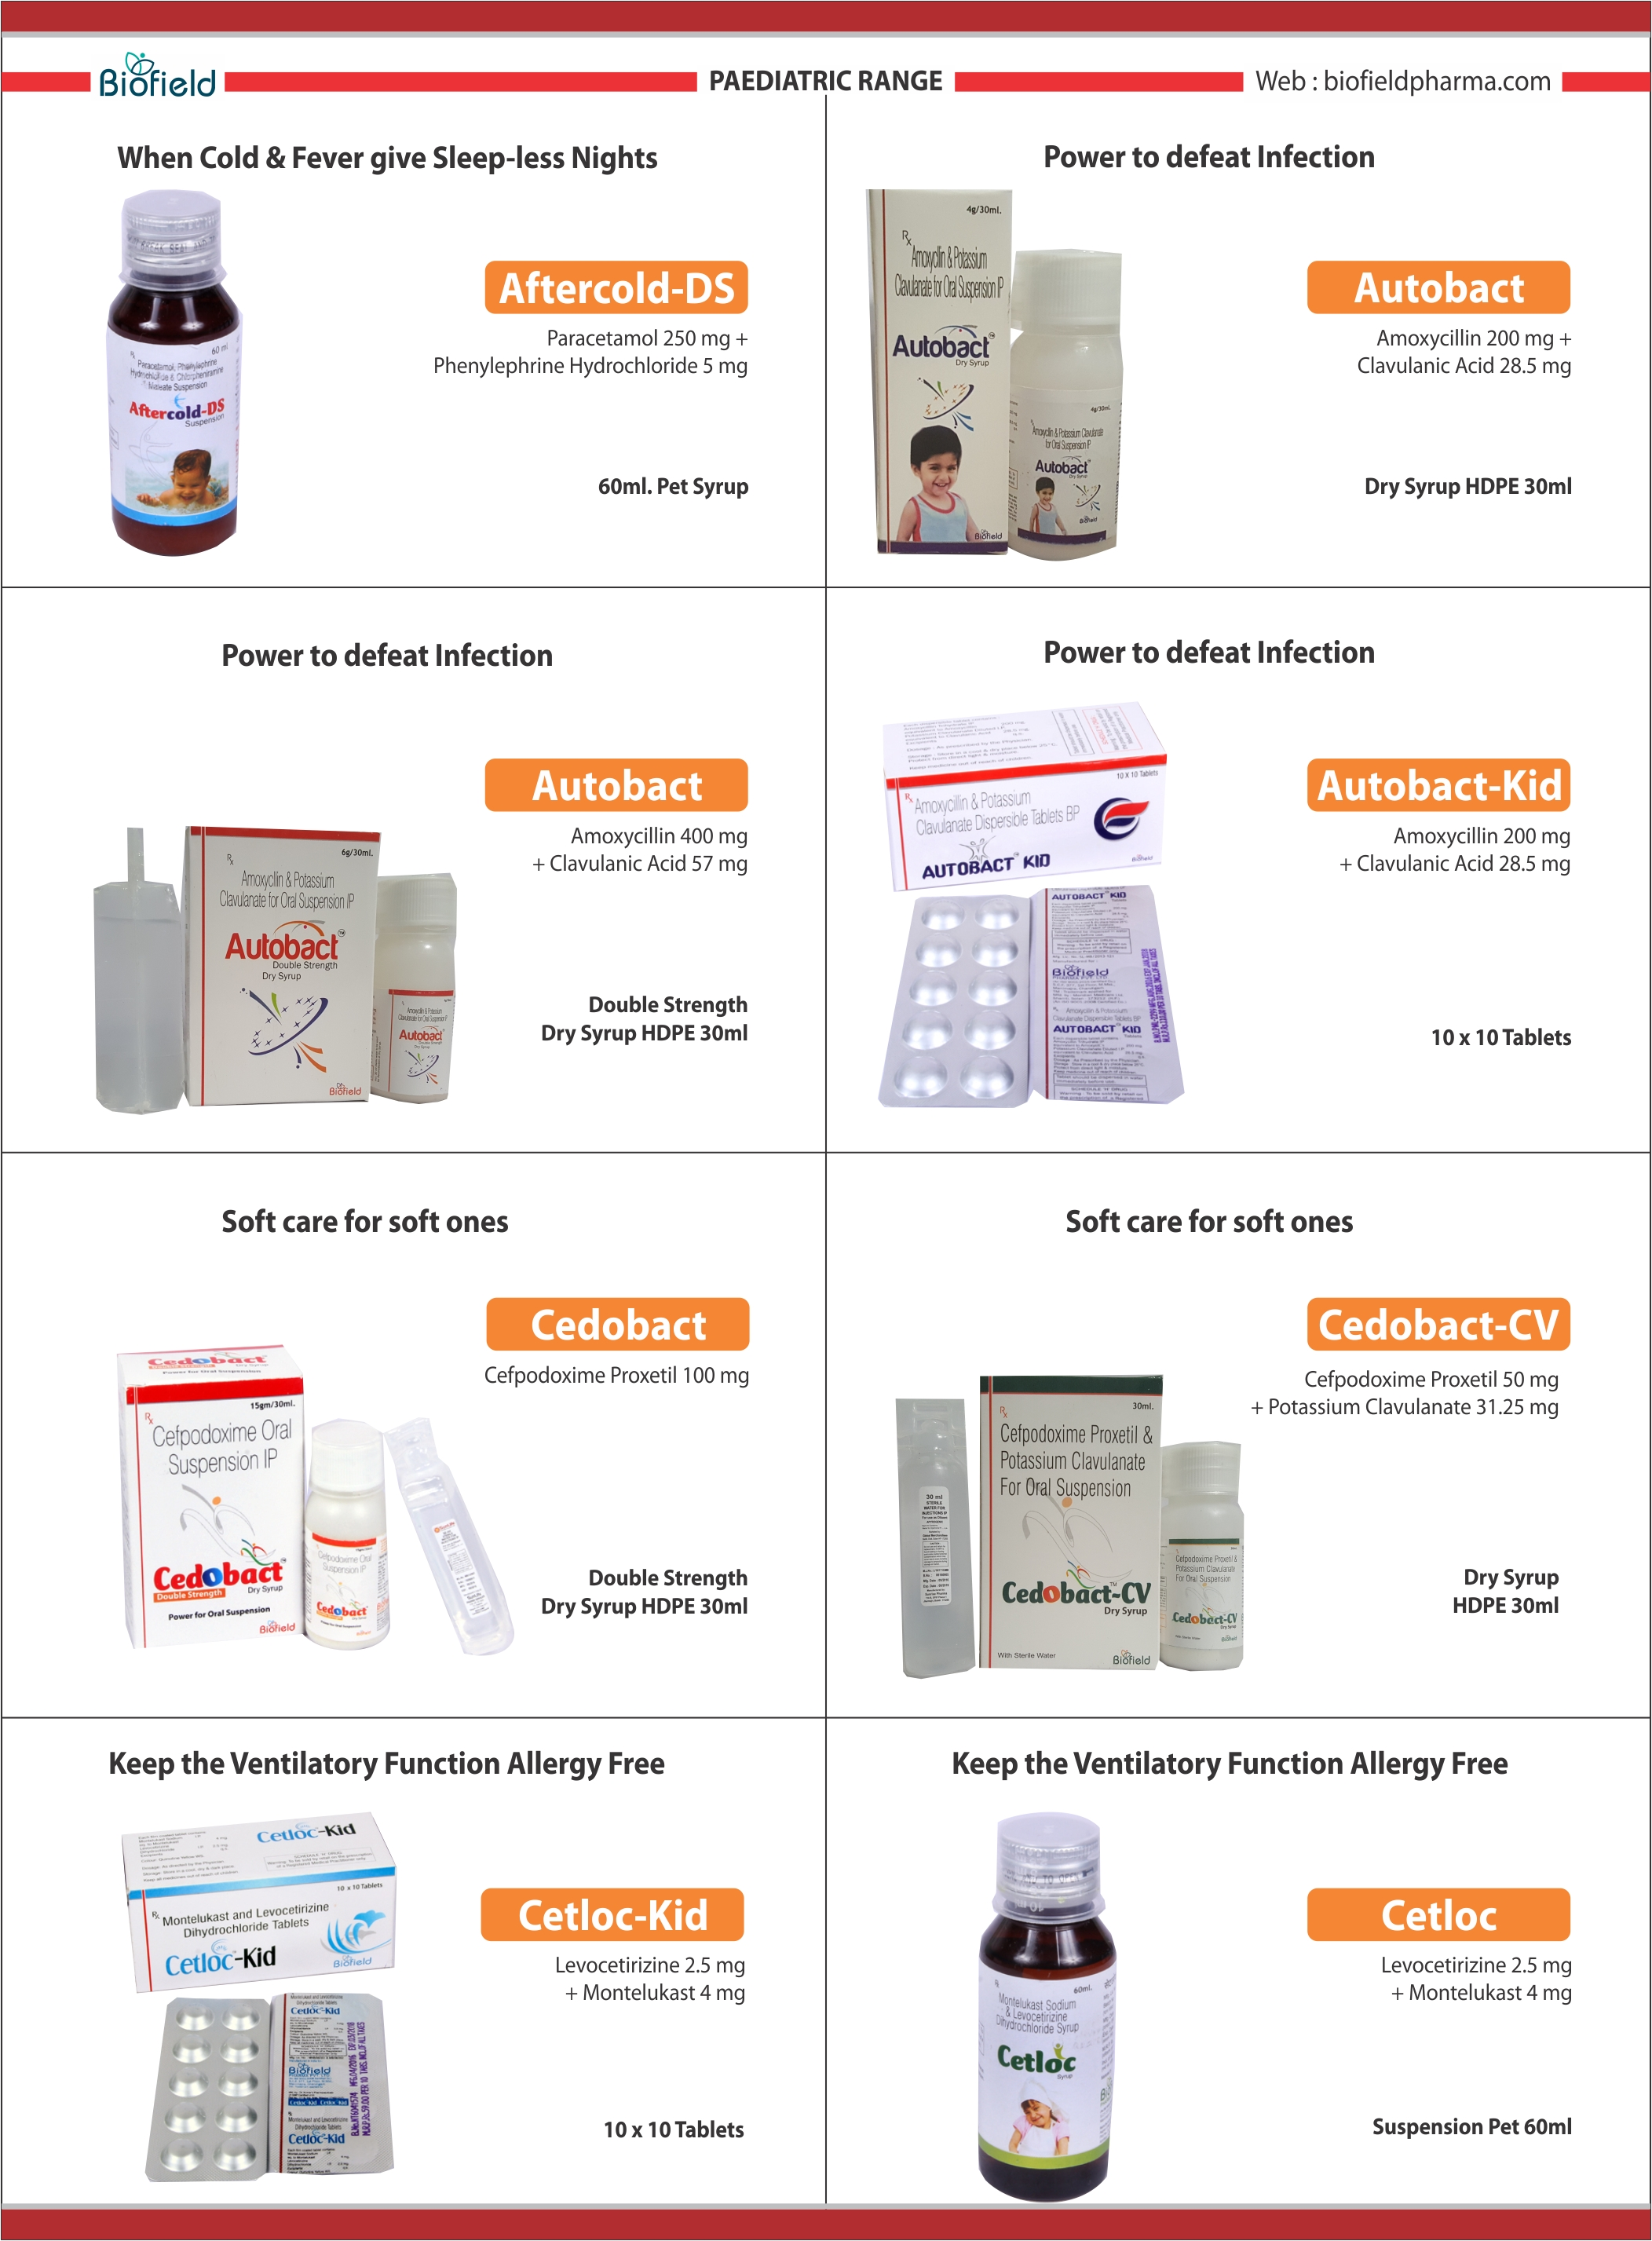 Pediatric Range for Pharma Franchise | Pediatric Medicines | Drugs